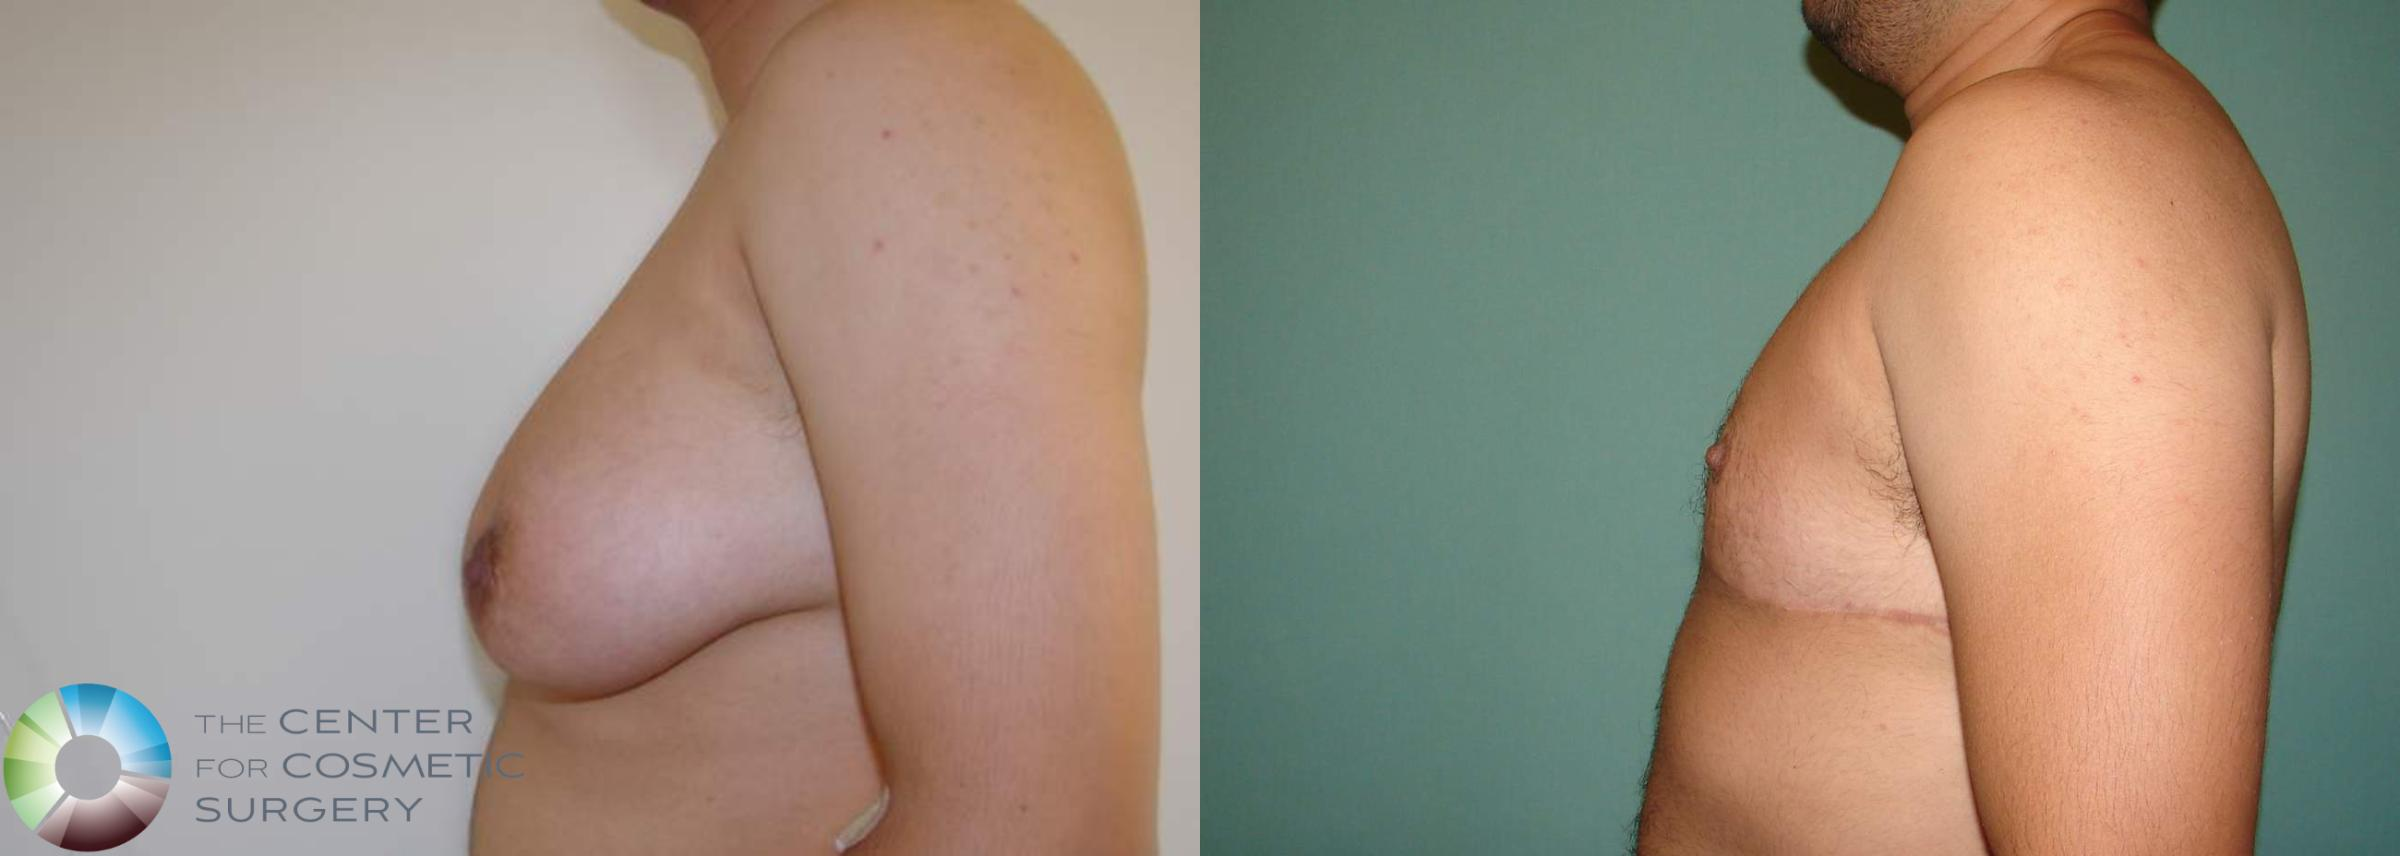 FTM Top Surgery/Chest Masculinization Case 566 Before & After View #3 | Golden, CO | The Center for Cosmetic Surgery